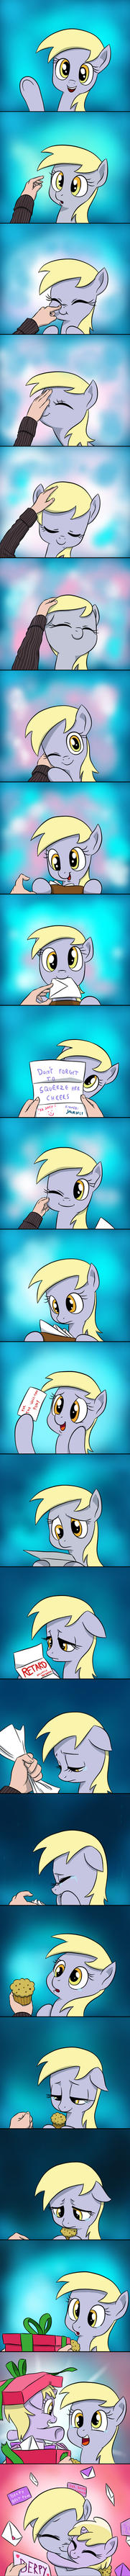 Derpy Simulator by doubleWbrothers